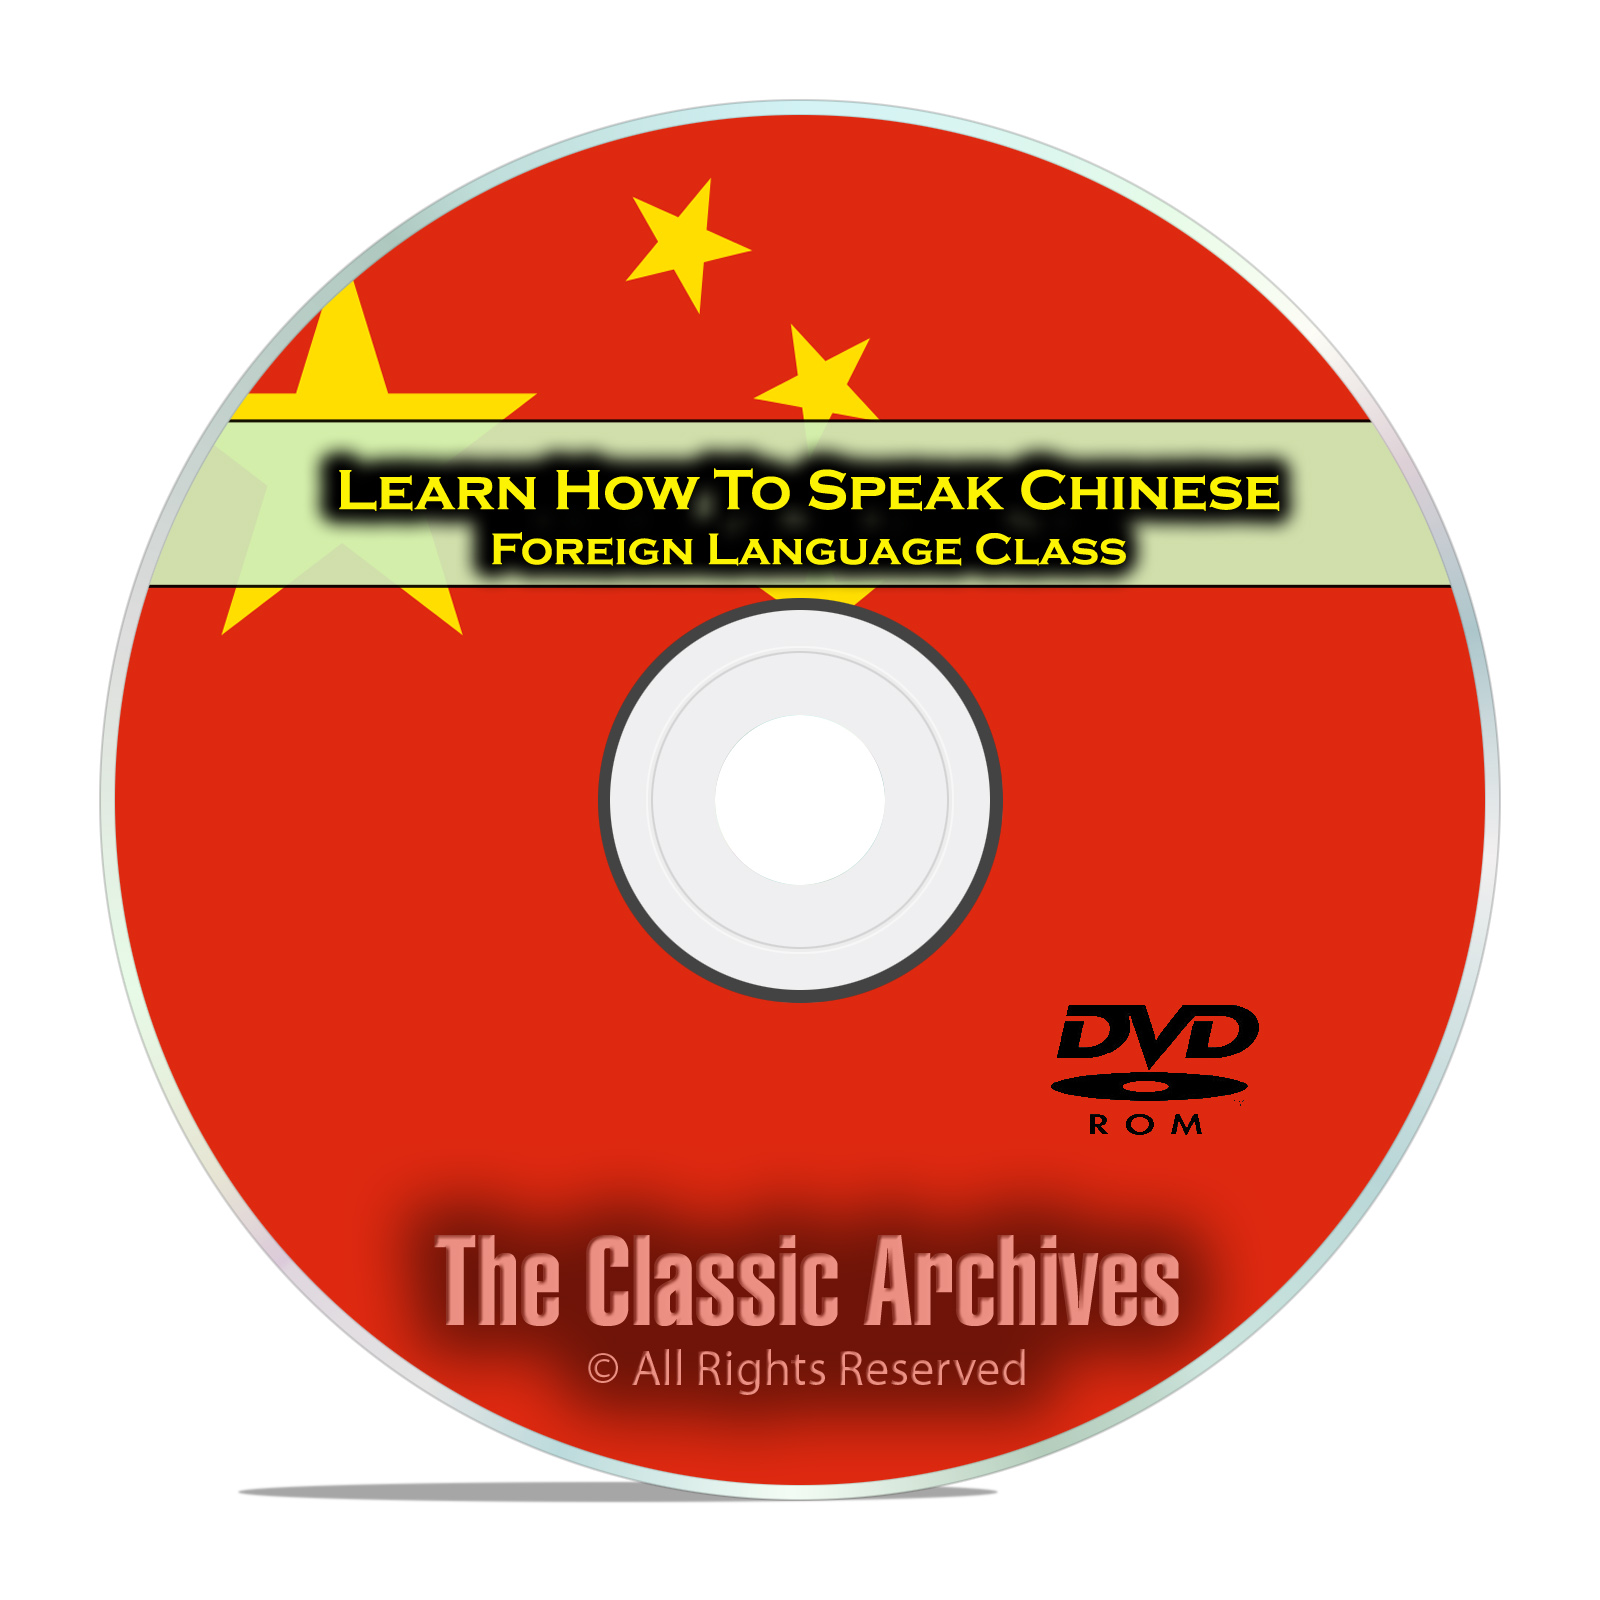 Learn How To Speak Chinese, Fast Foreign Language Training Course, DVD